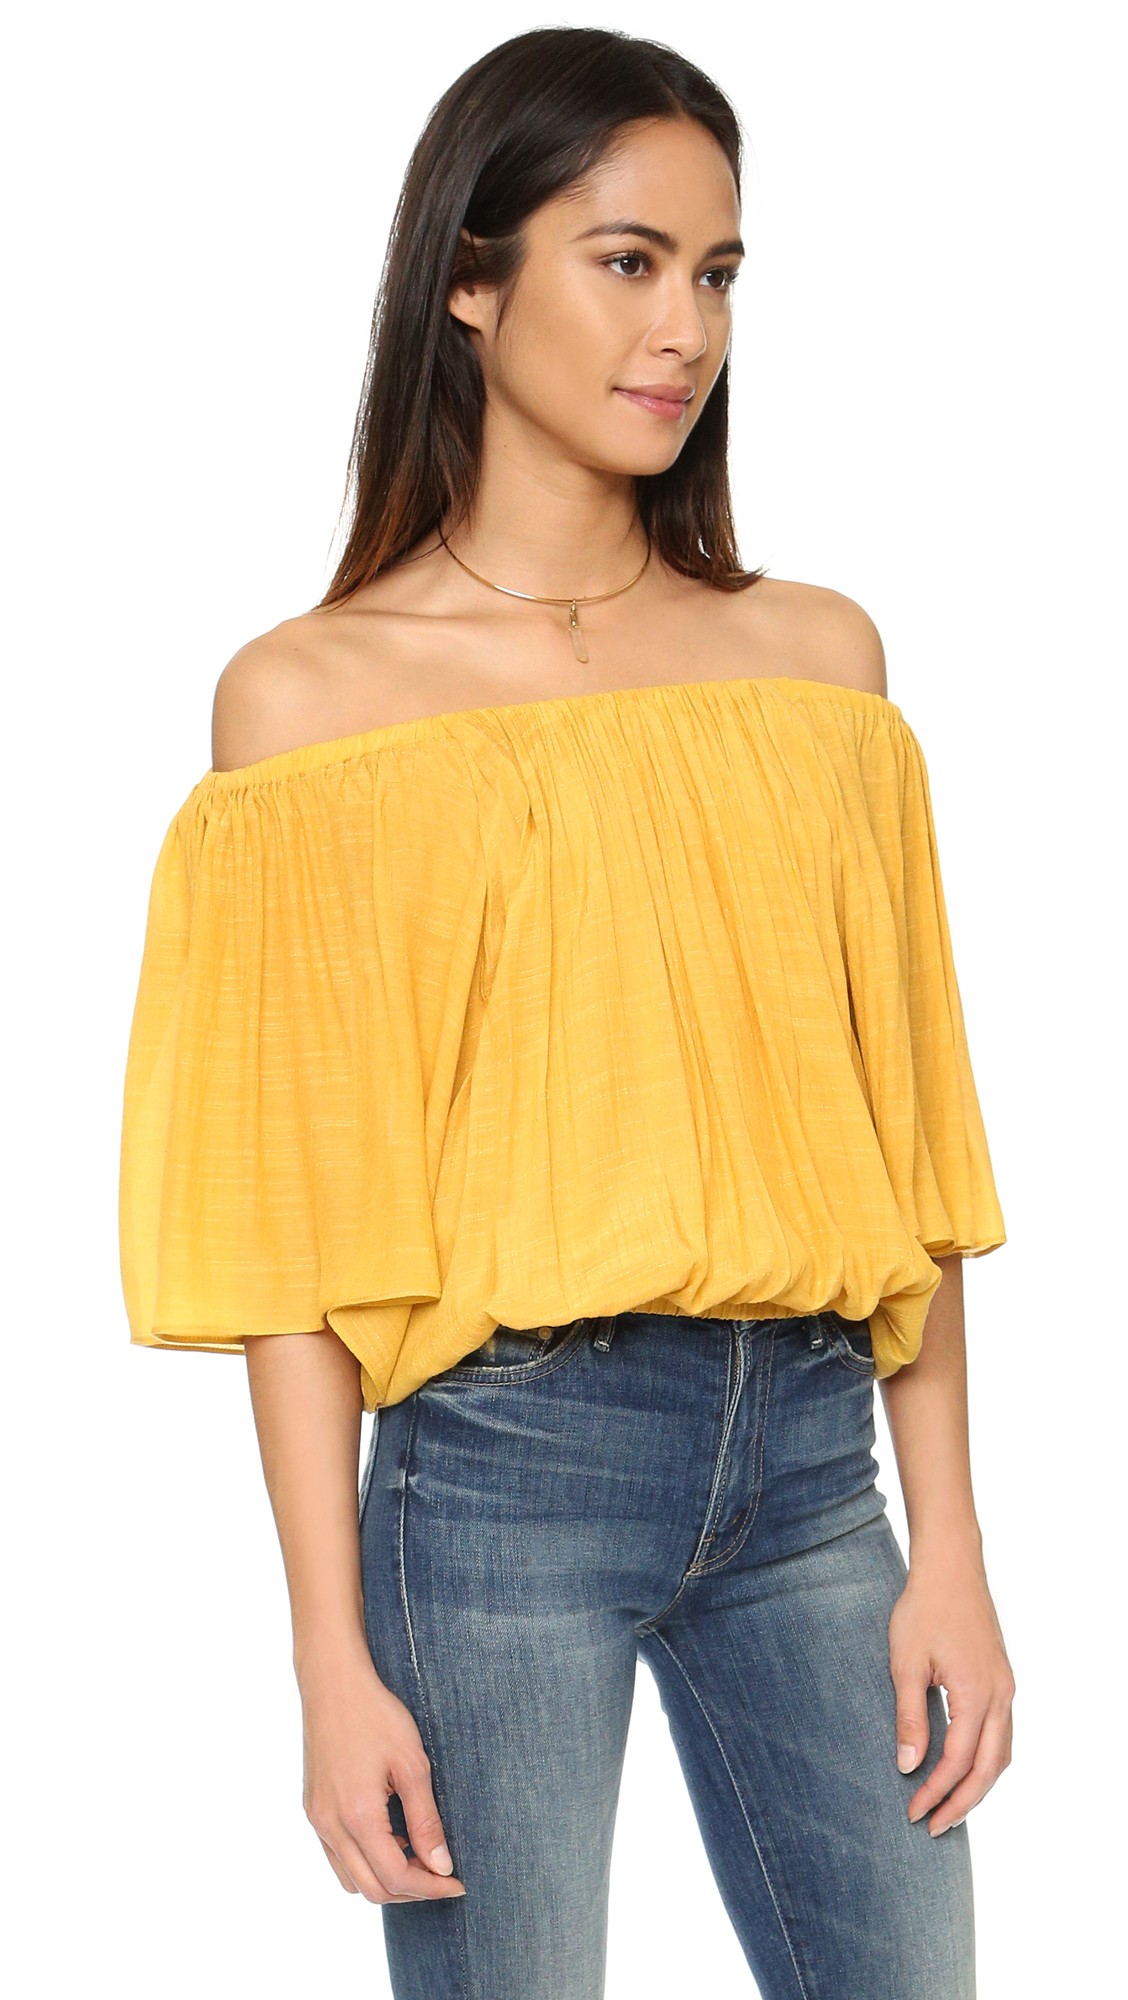 United Luggage Size Lyst T Bags Off Shoulder Blouse Mustard In Yellow